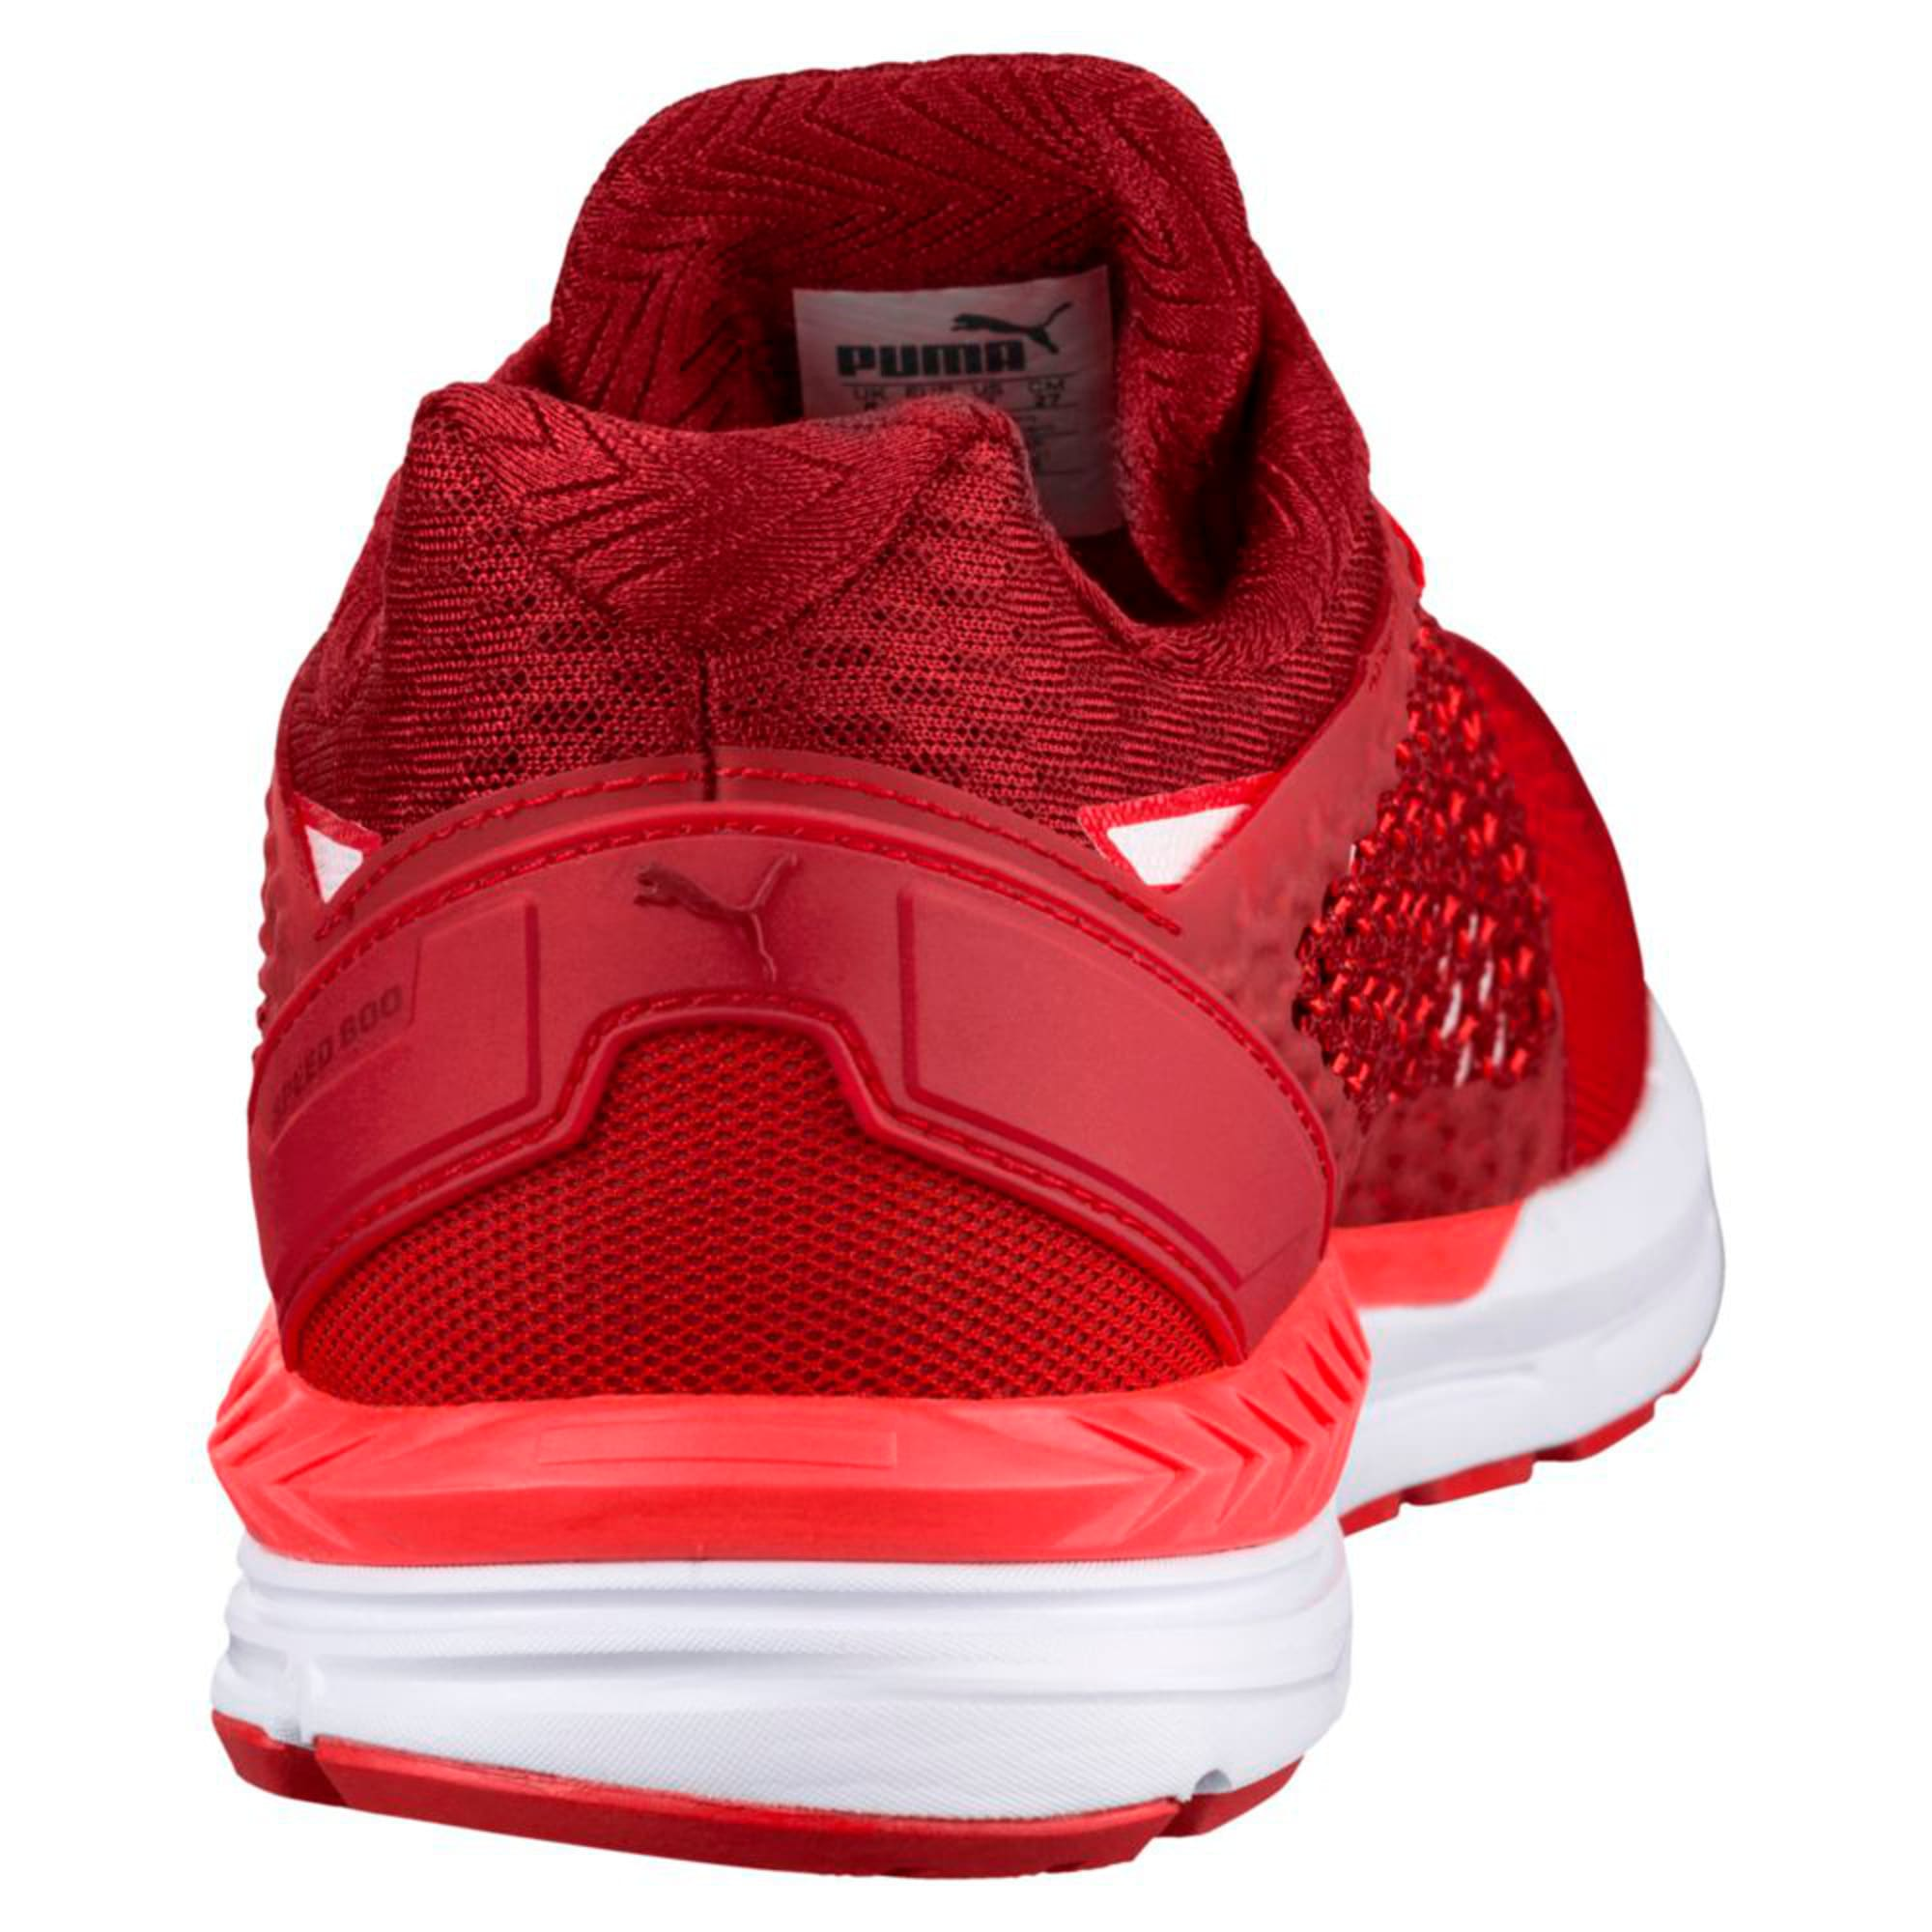 Thumbnail 6 of Speed 600 IGNITE 3 Men's Running Shoes, Scarlet-Red Dahlia-White, medium-IND